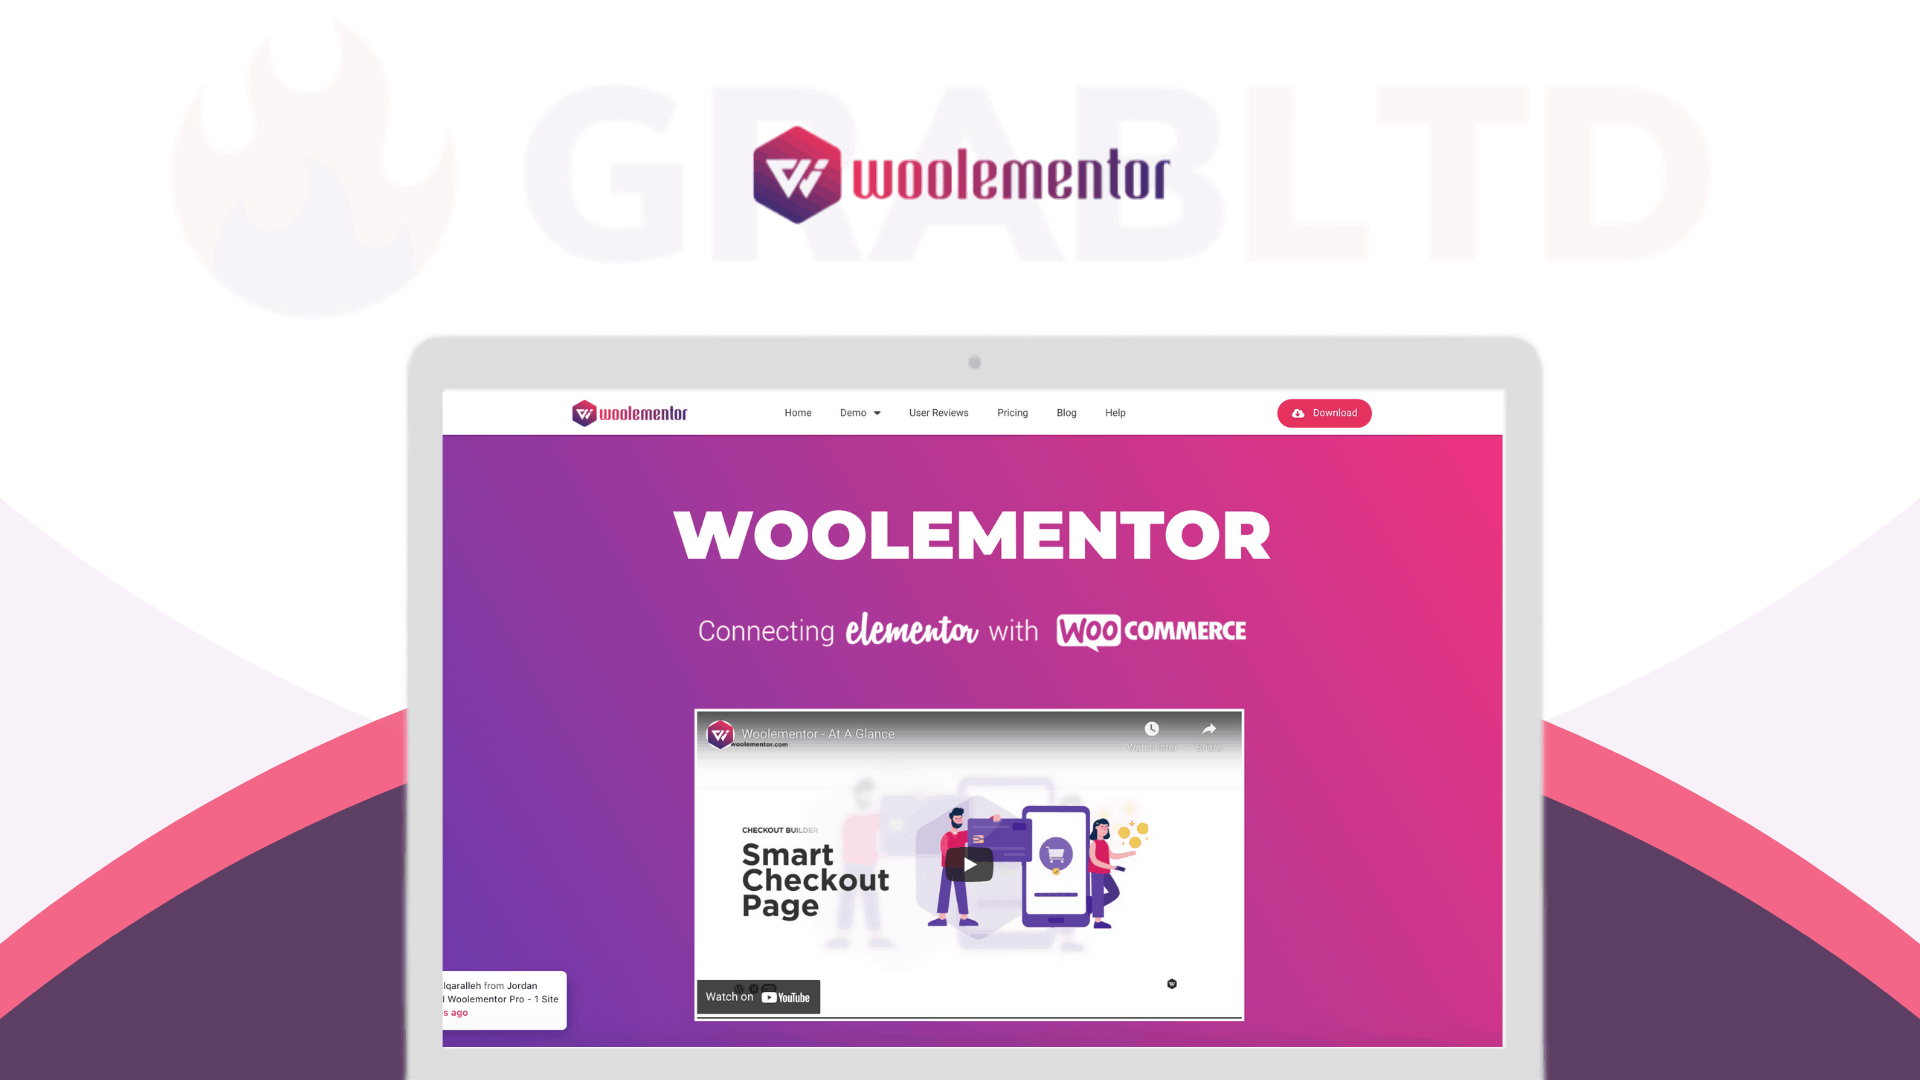 Woolementor | Connecting Elementor with WooCommerce 1